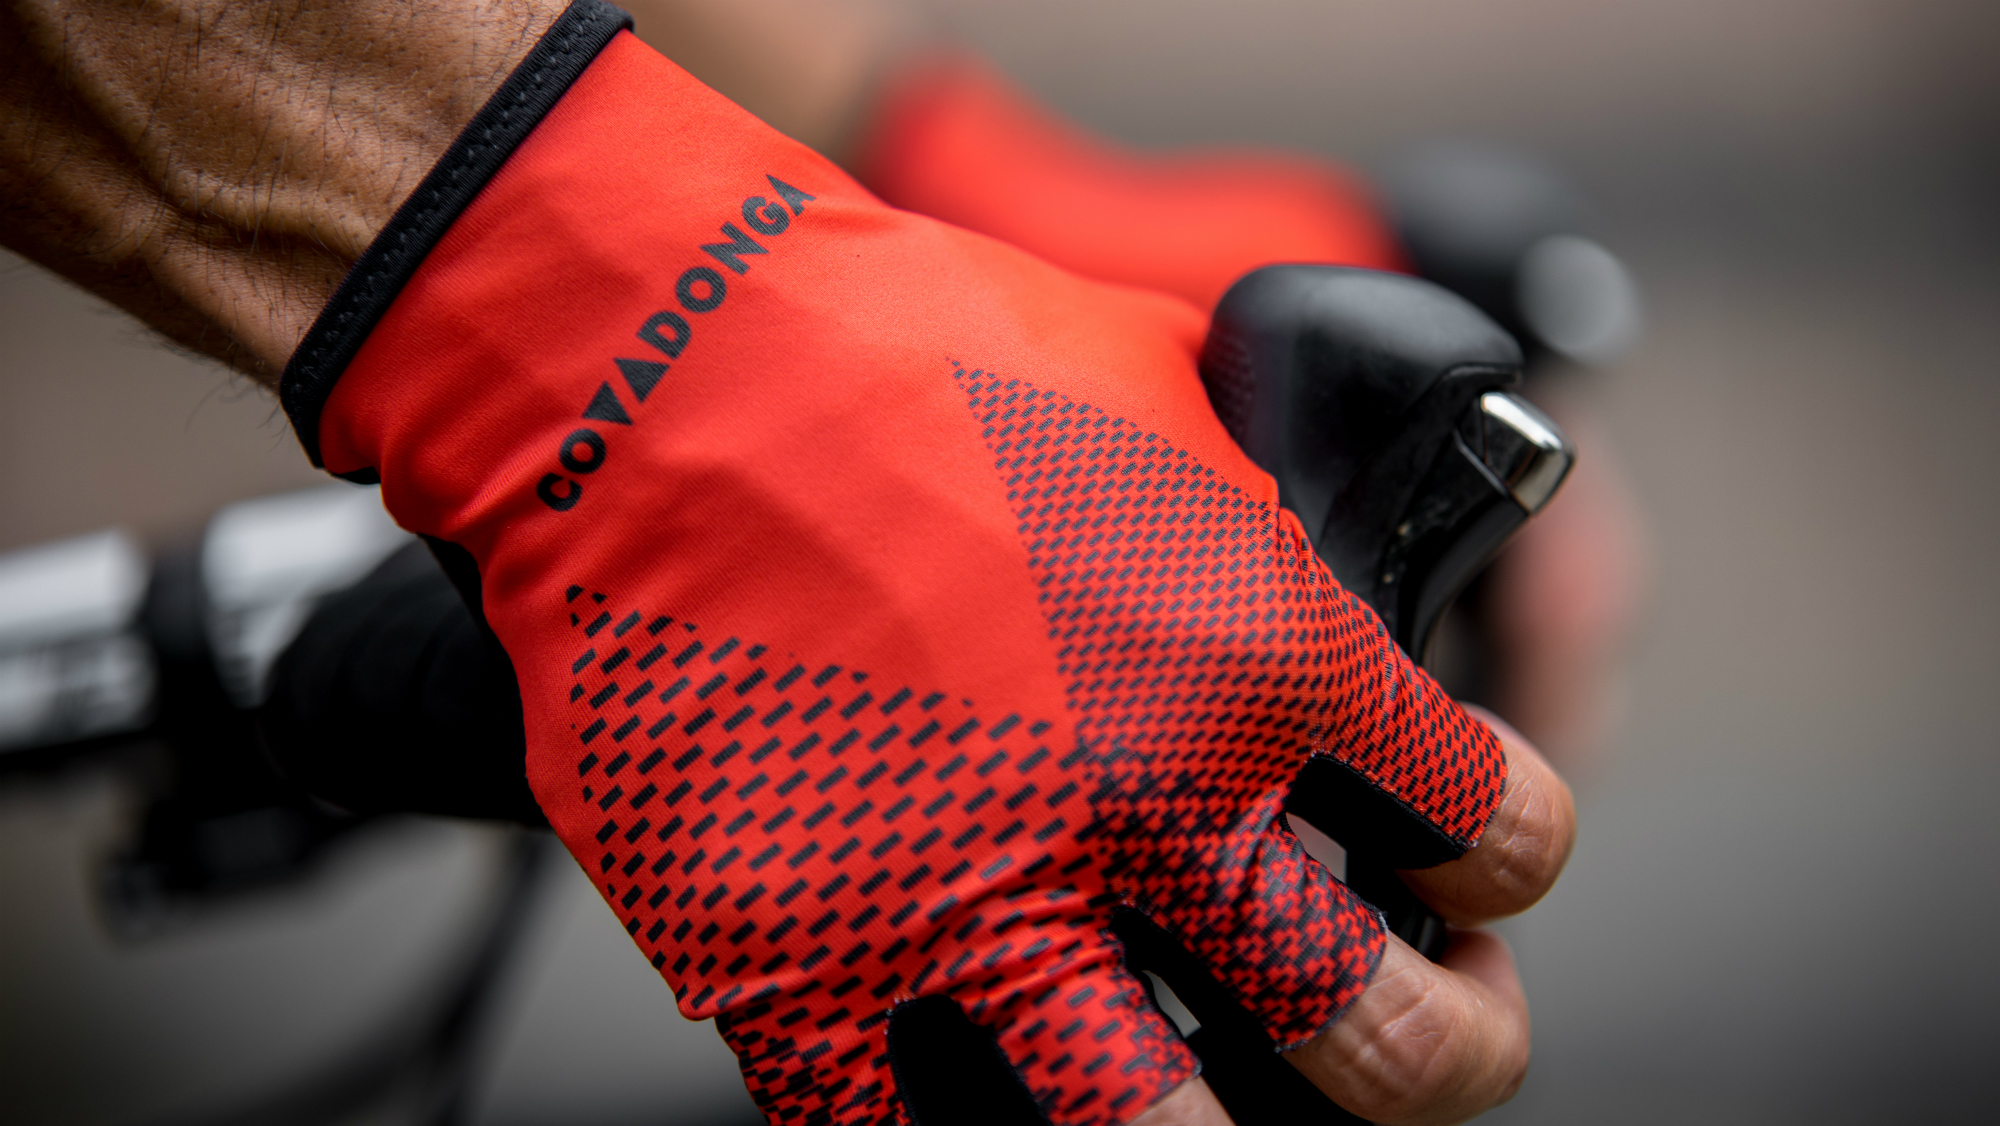 a cyclist gripping the handlebars wearing the Kalas Covadonga gloves